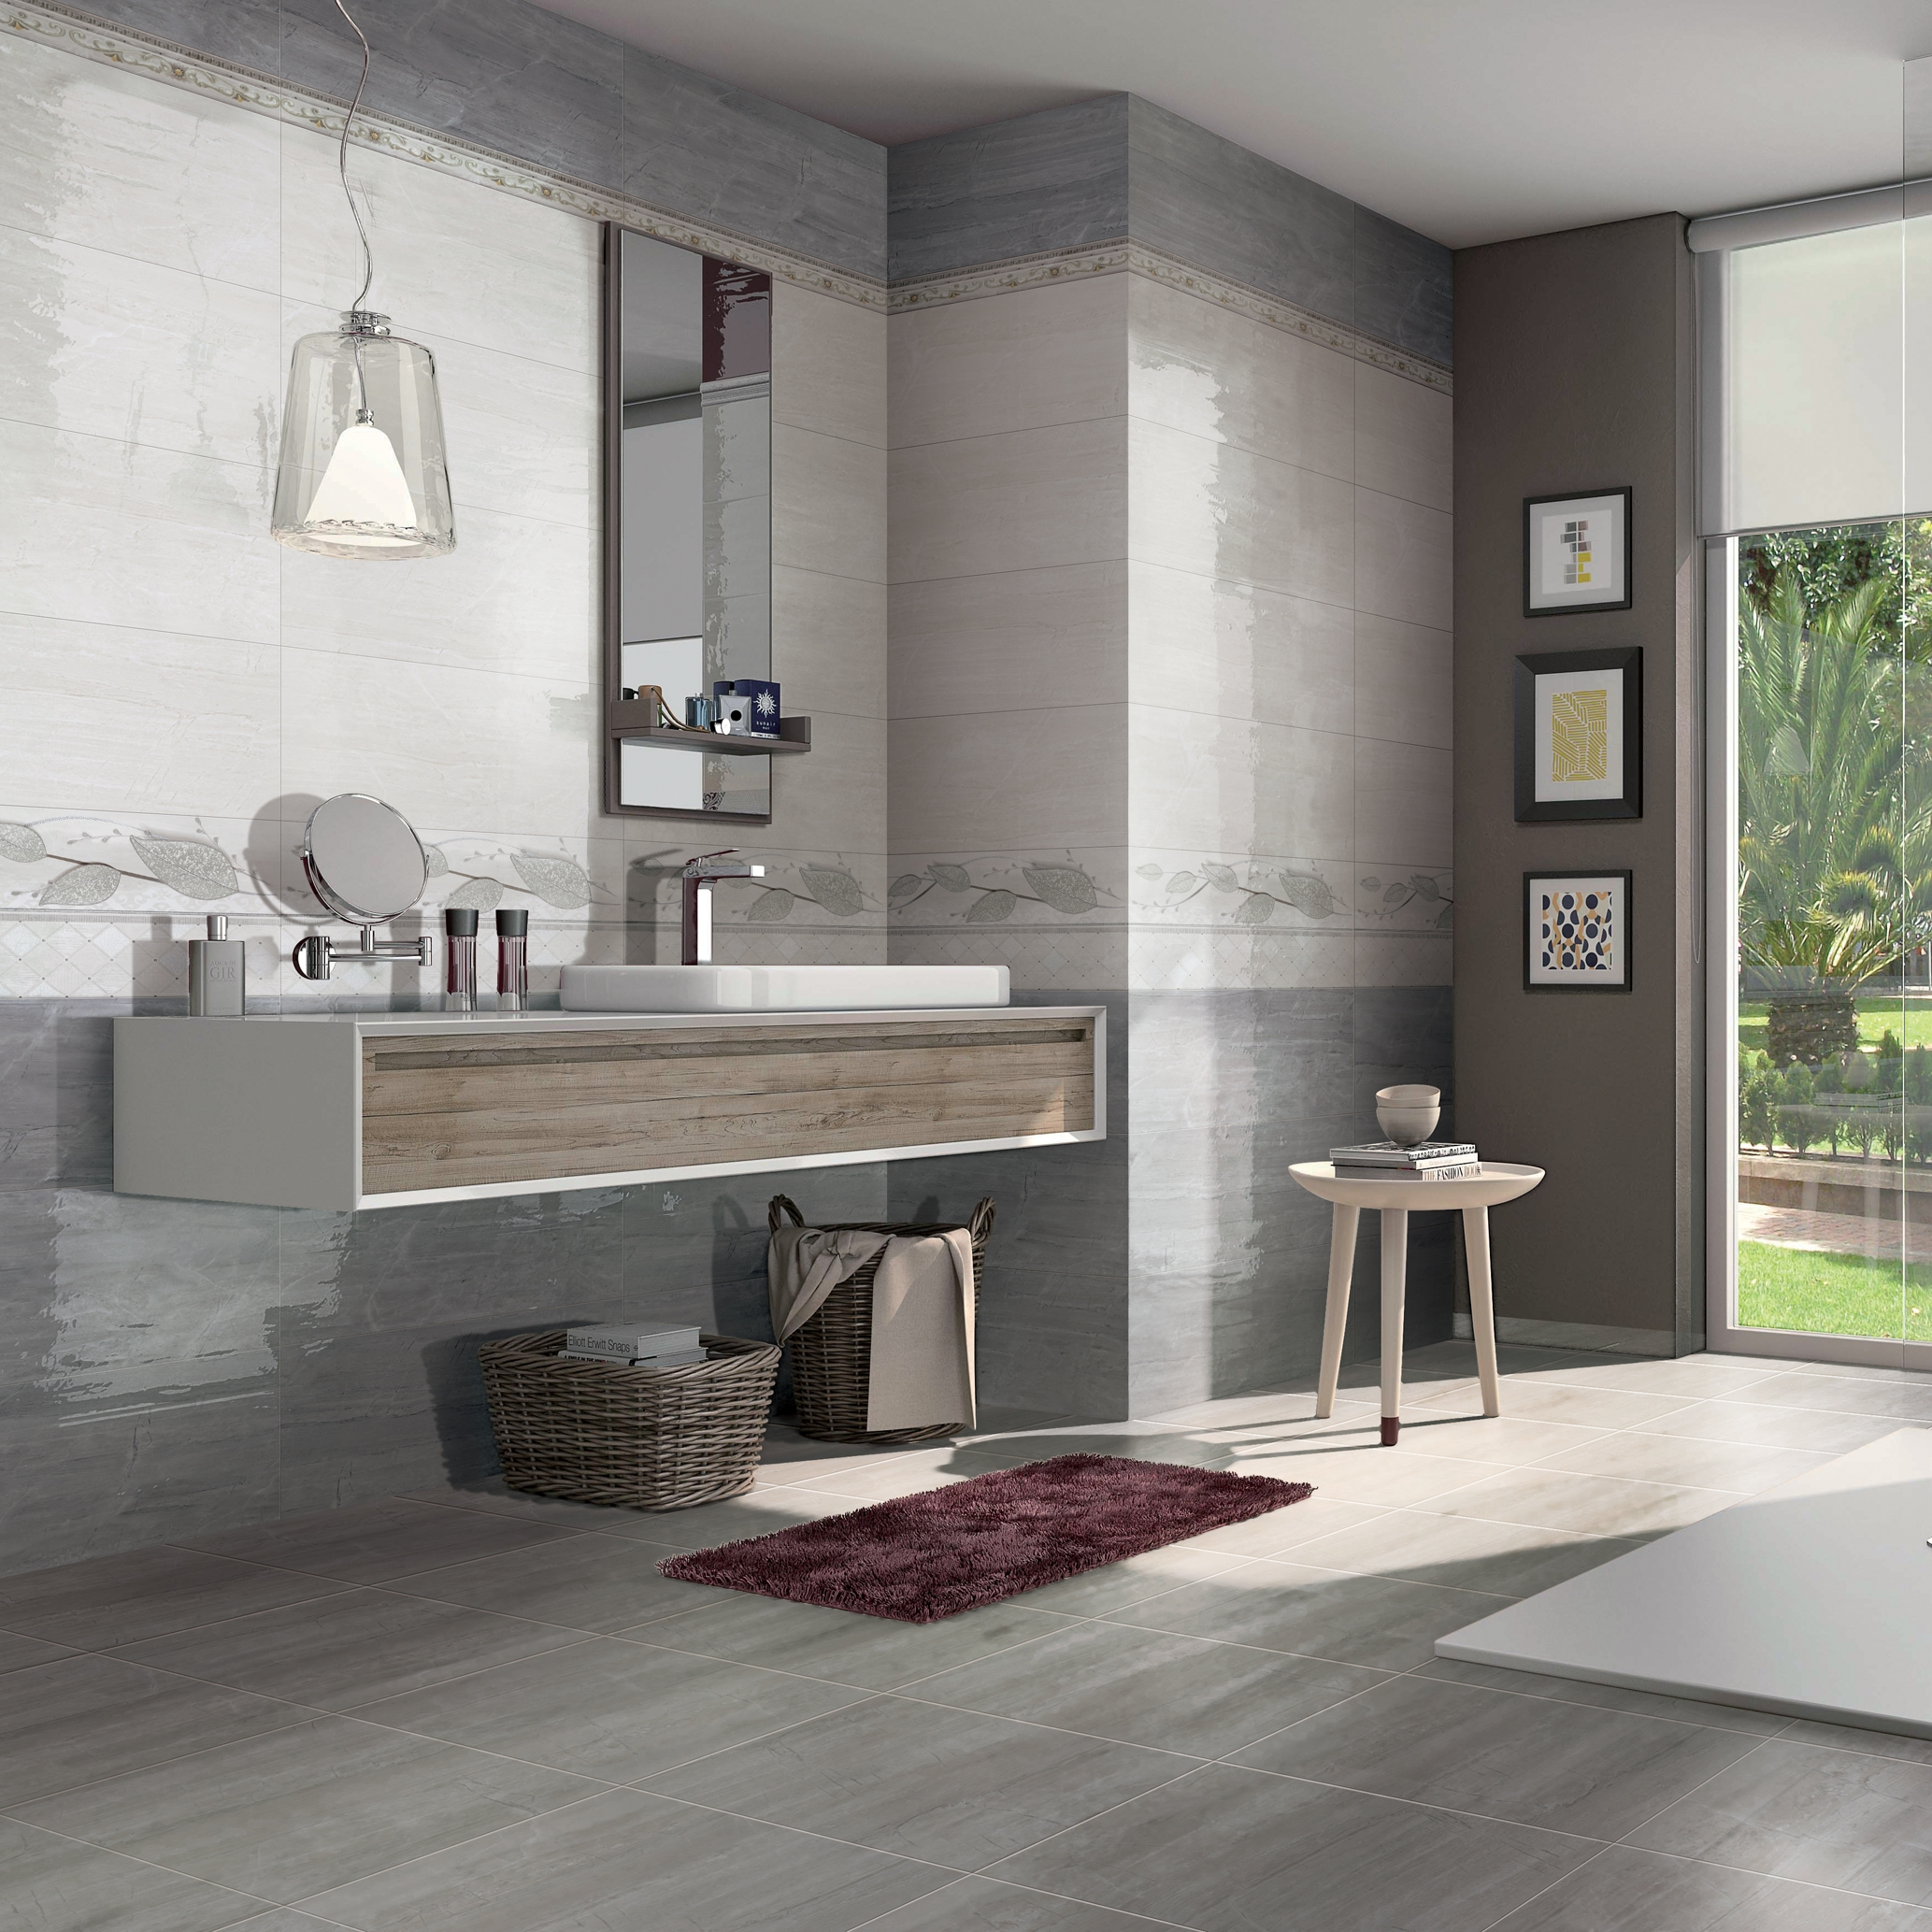 Competitive Price 30x60 Small Square Wall Ceramic Tiles For